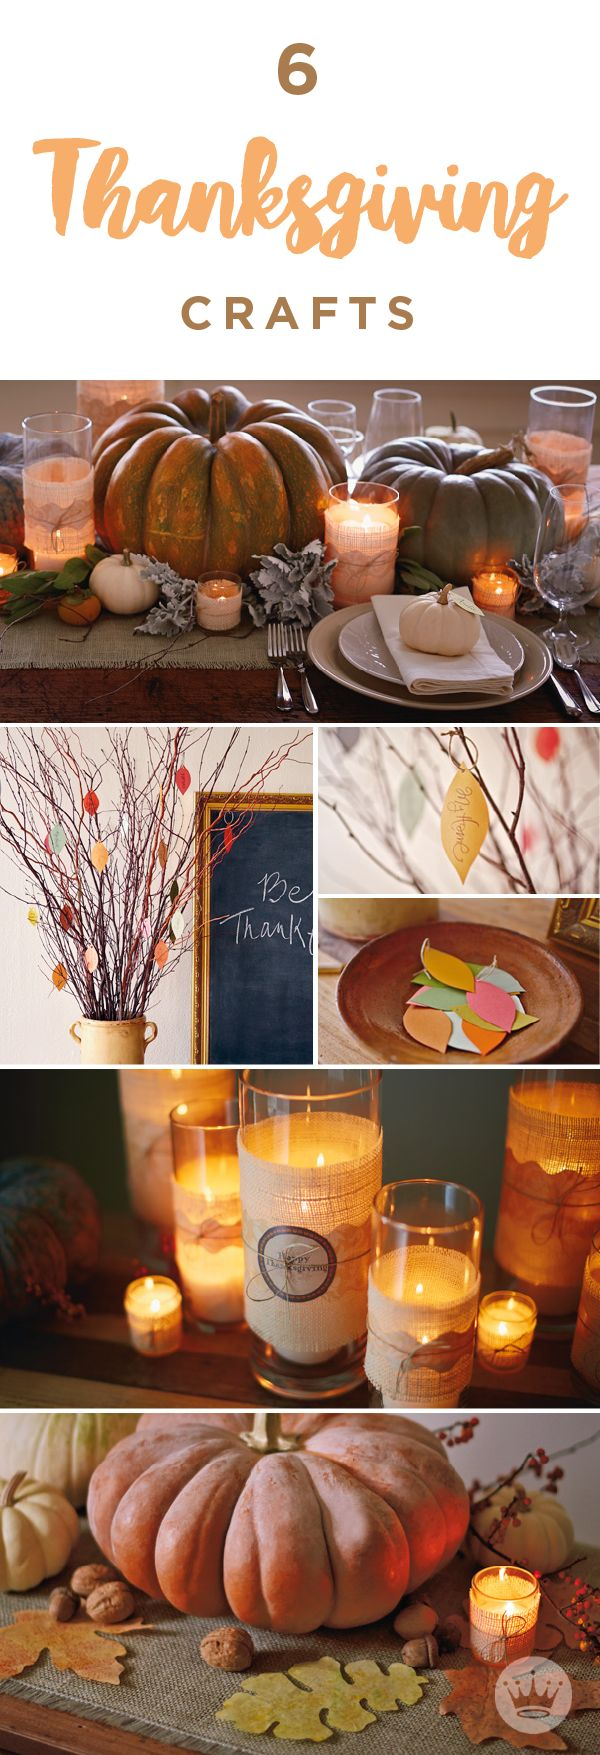 thanksgiving food craft ideas 1000 images about thanksgiving ideas on 5566